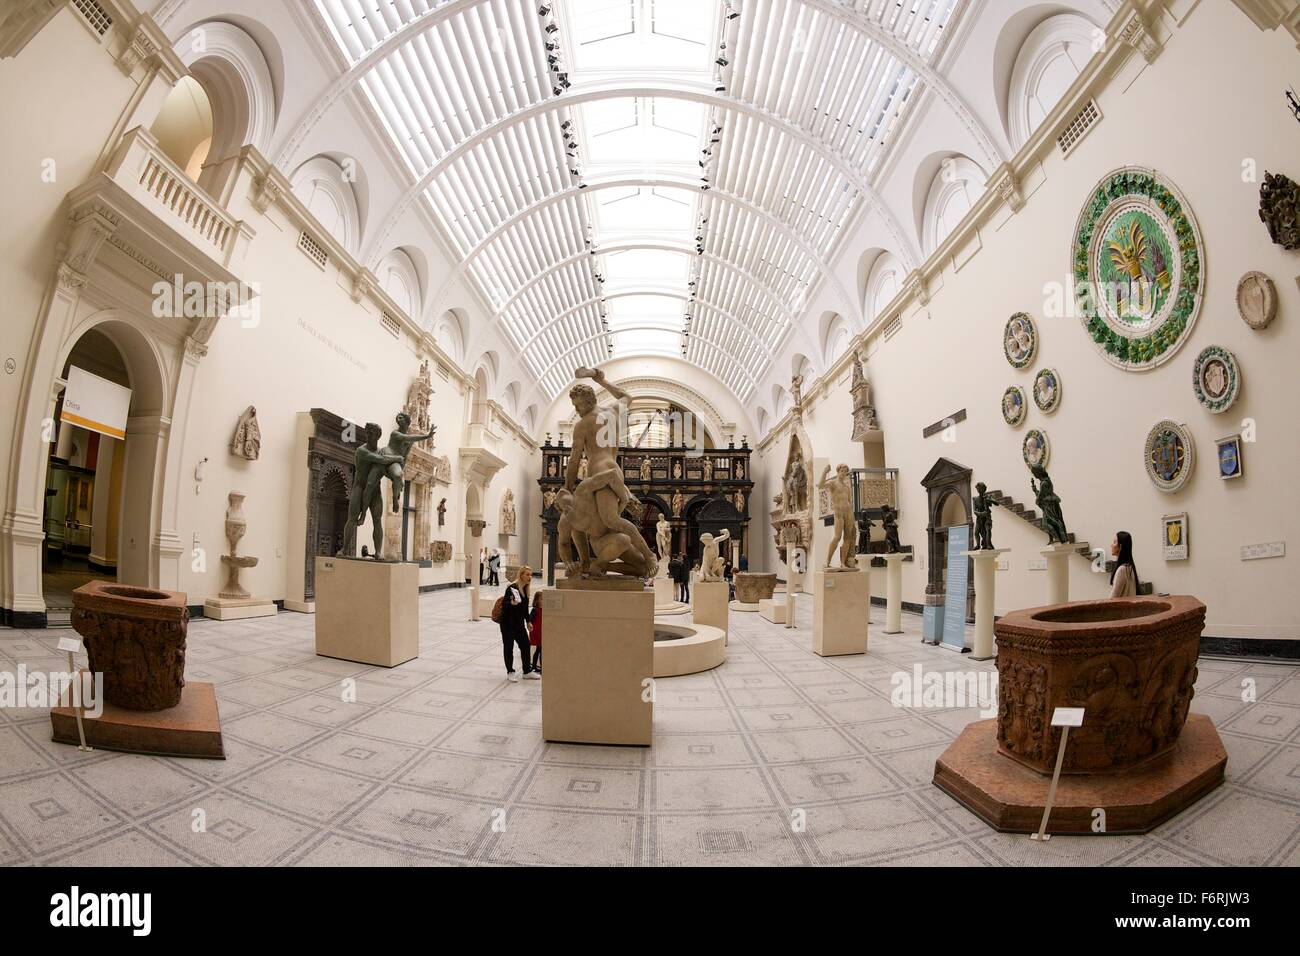 New Renaissance Galleries, Victoria and Albert Museum, London, UK - Stock Image